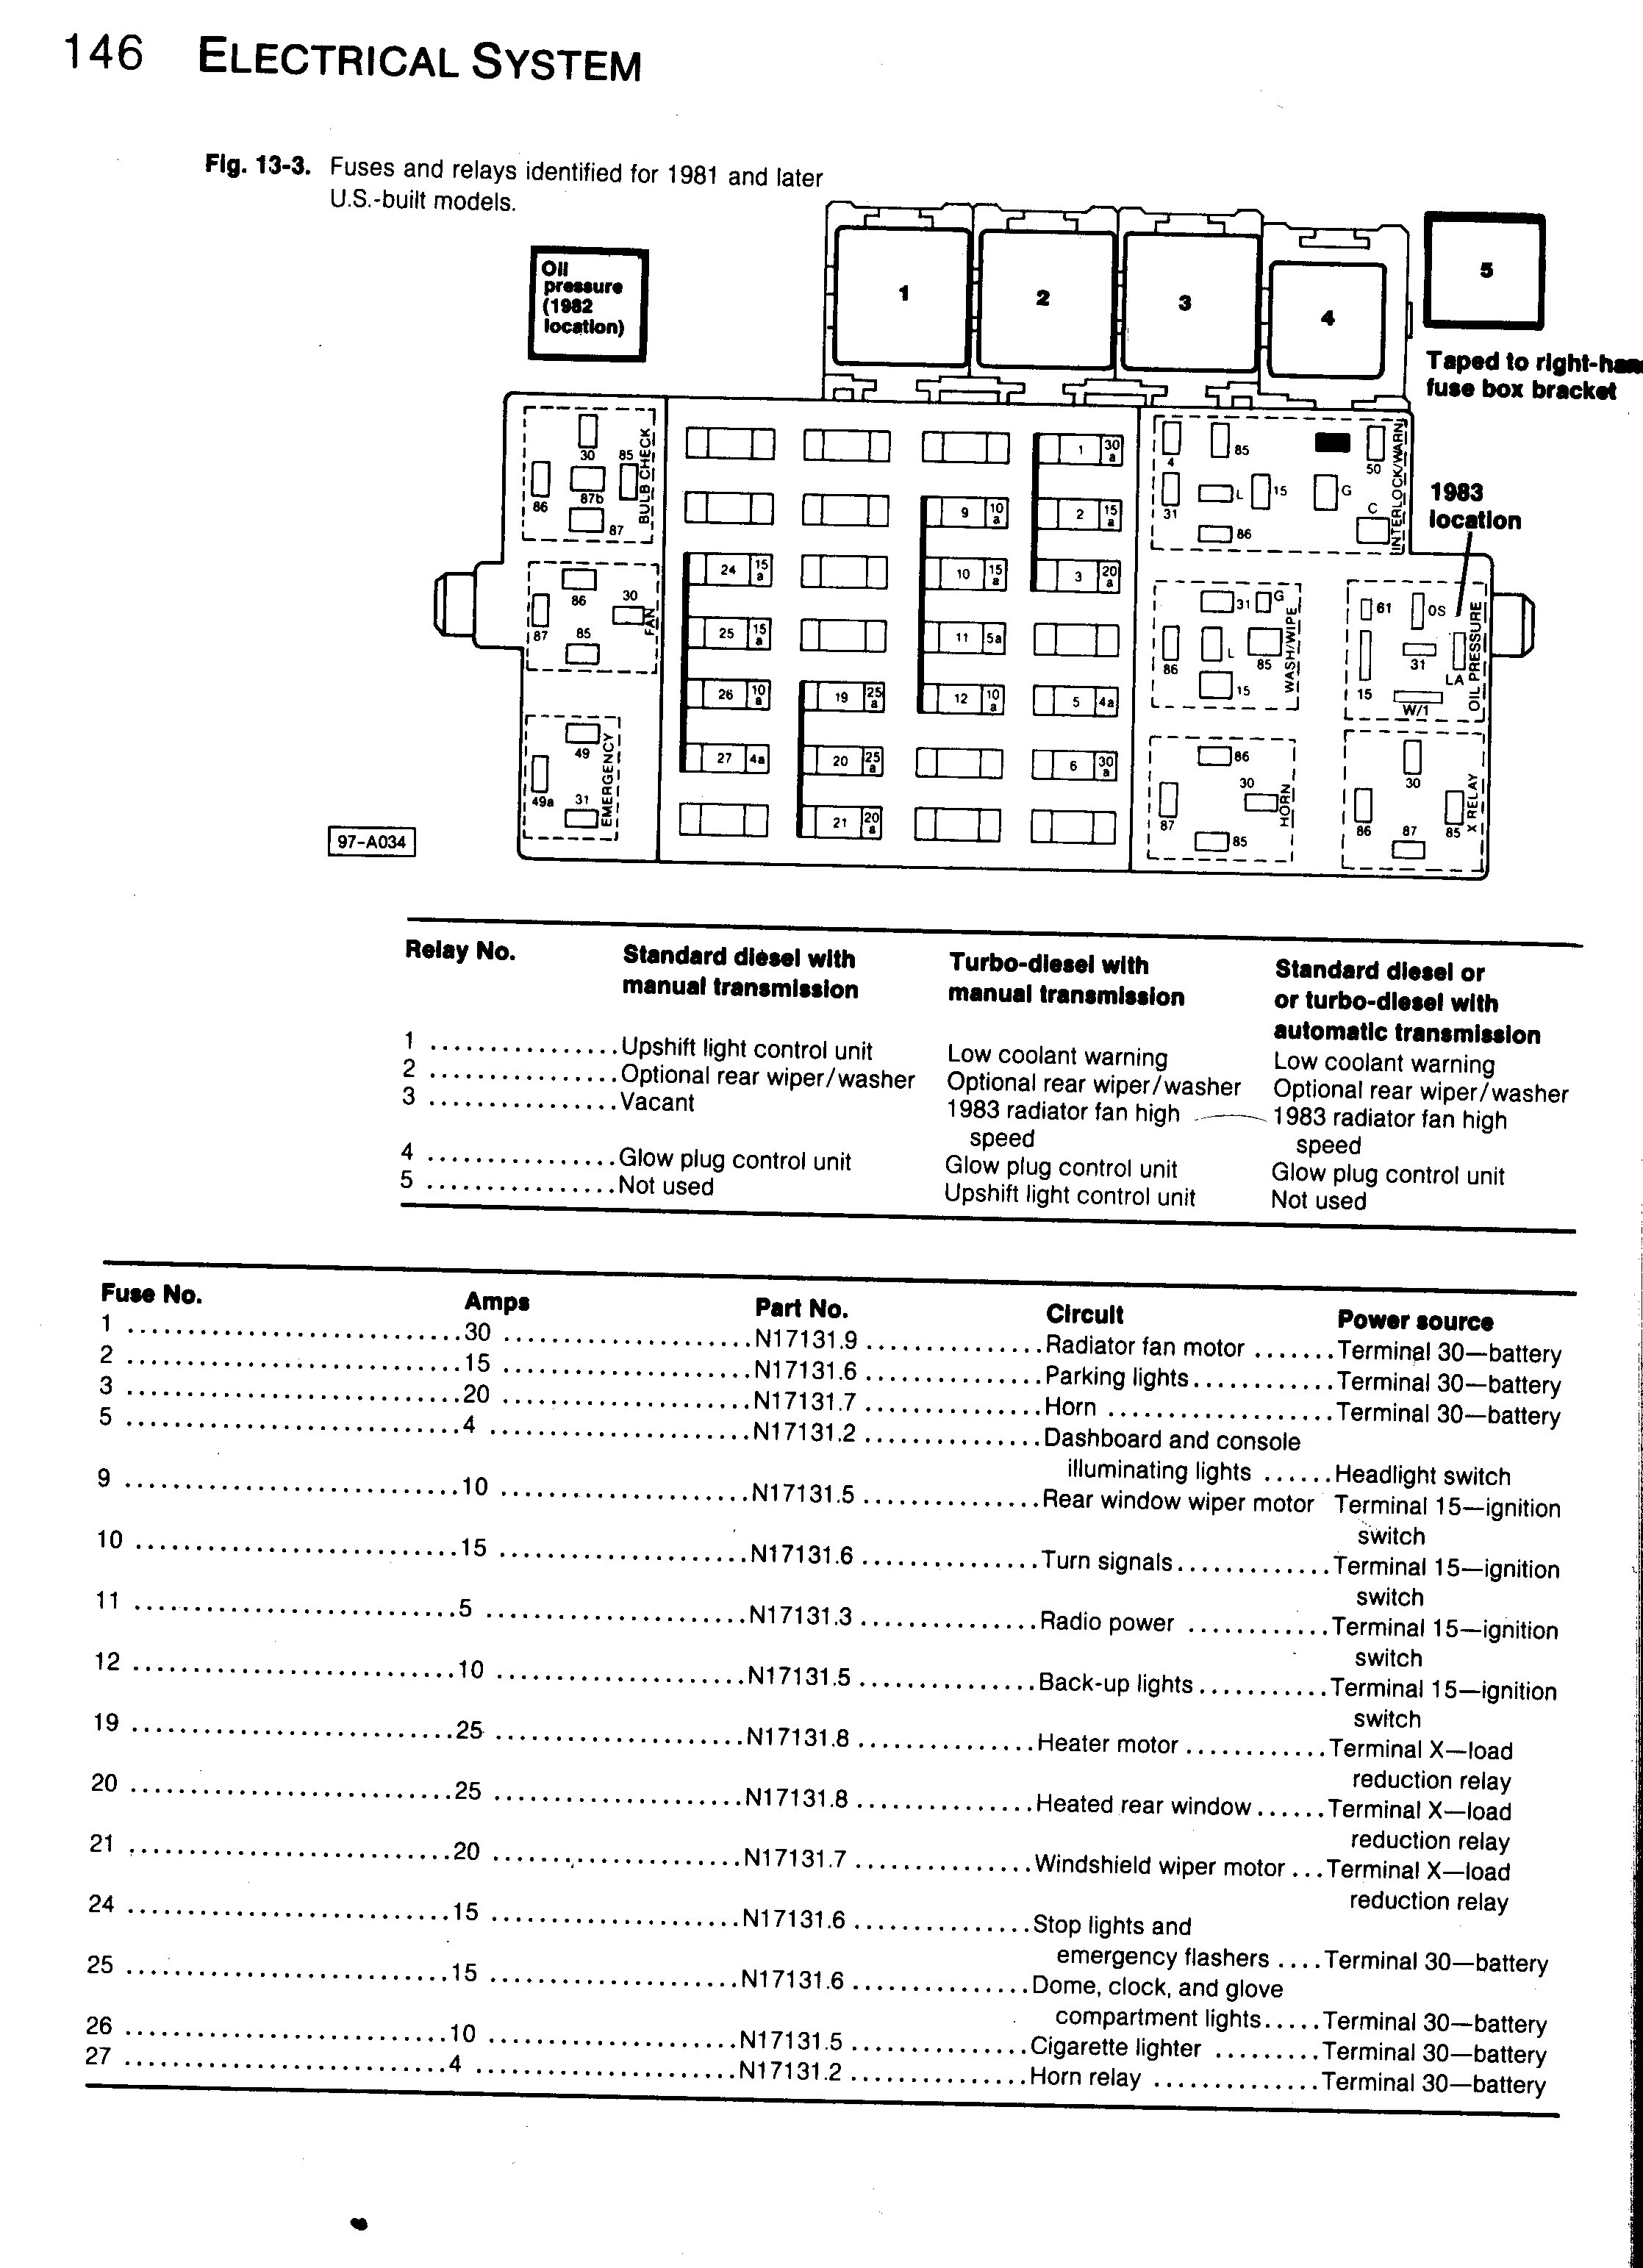 2004 Ford F350 Fuse Diagram Explaned Wiring Library 04 E450 Panel 1995 Images Gallery